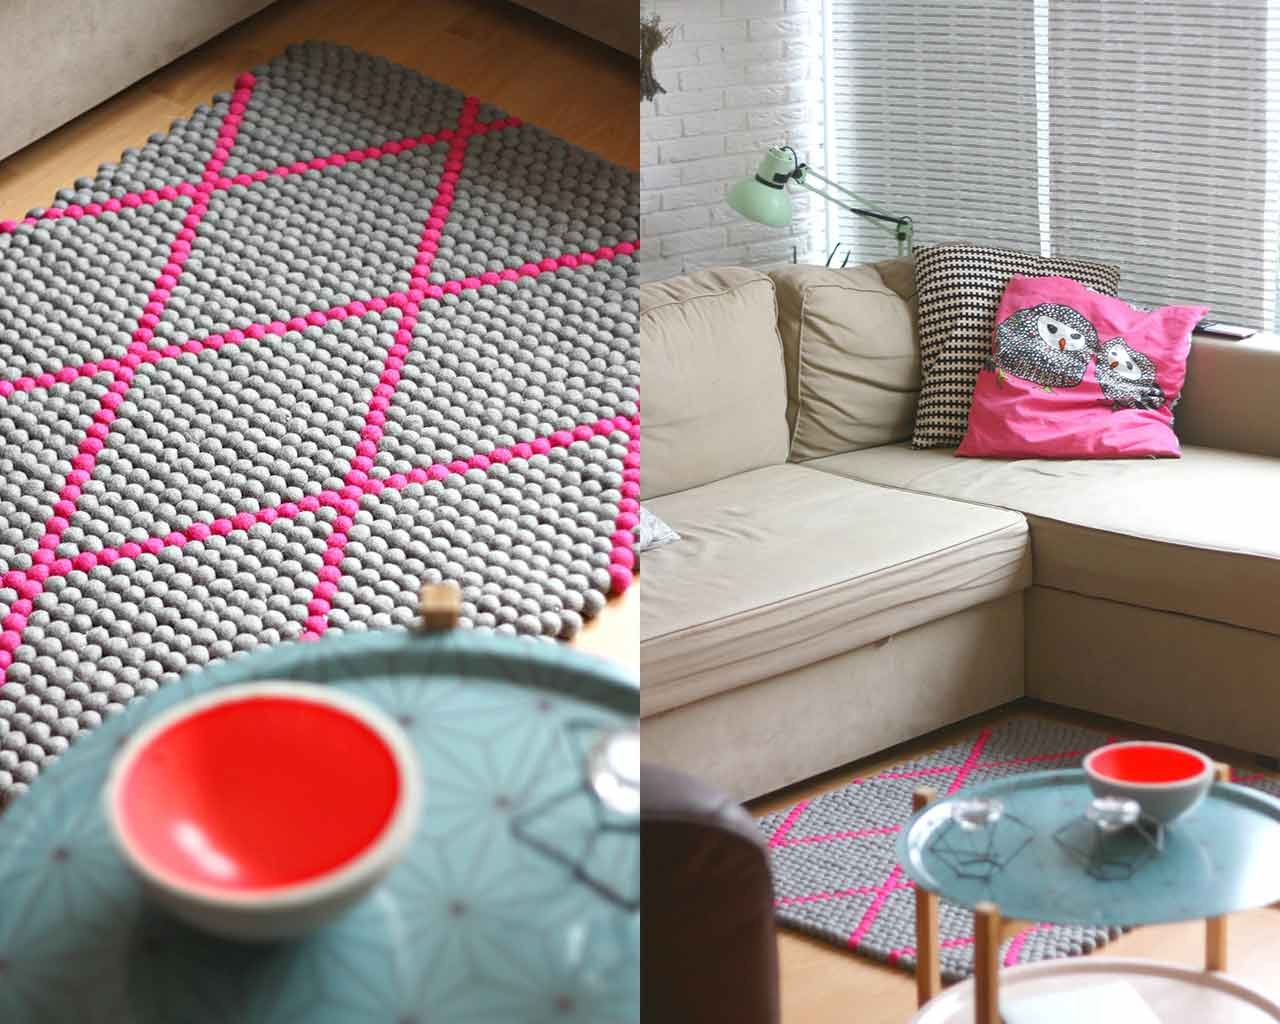 patterned rug design